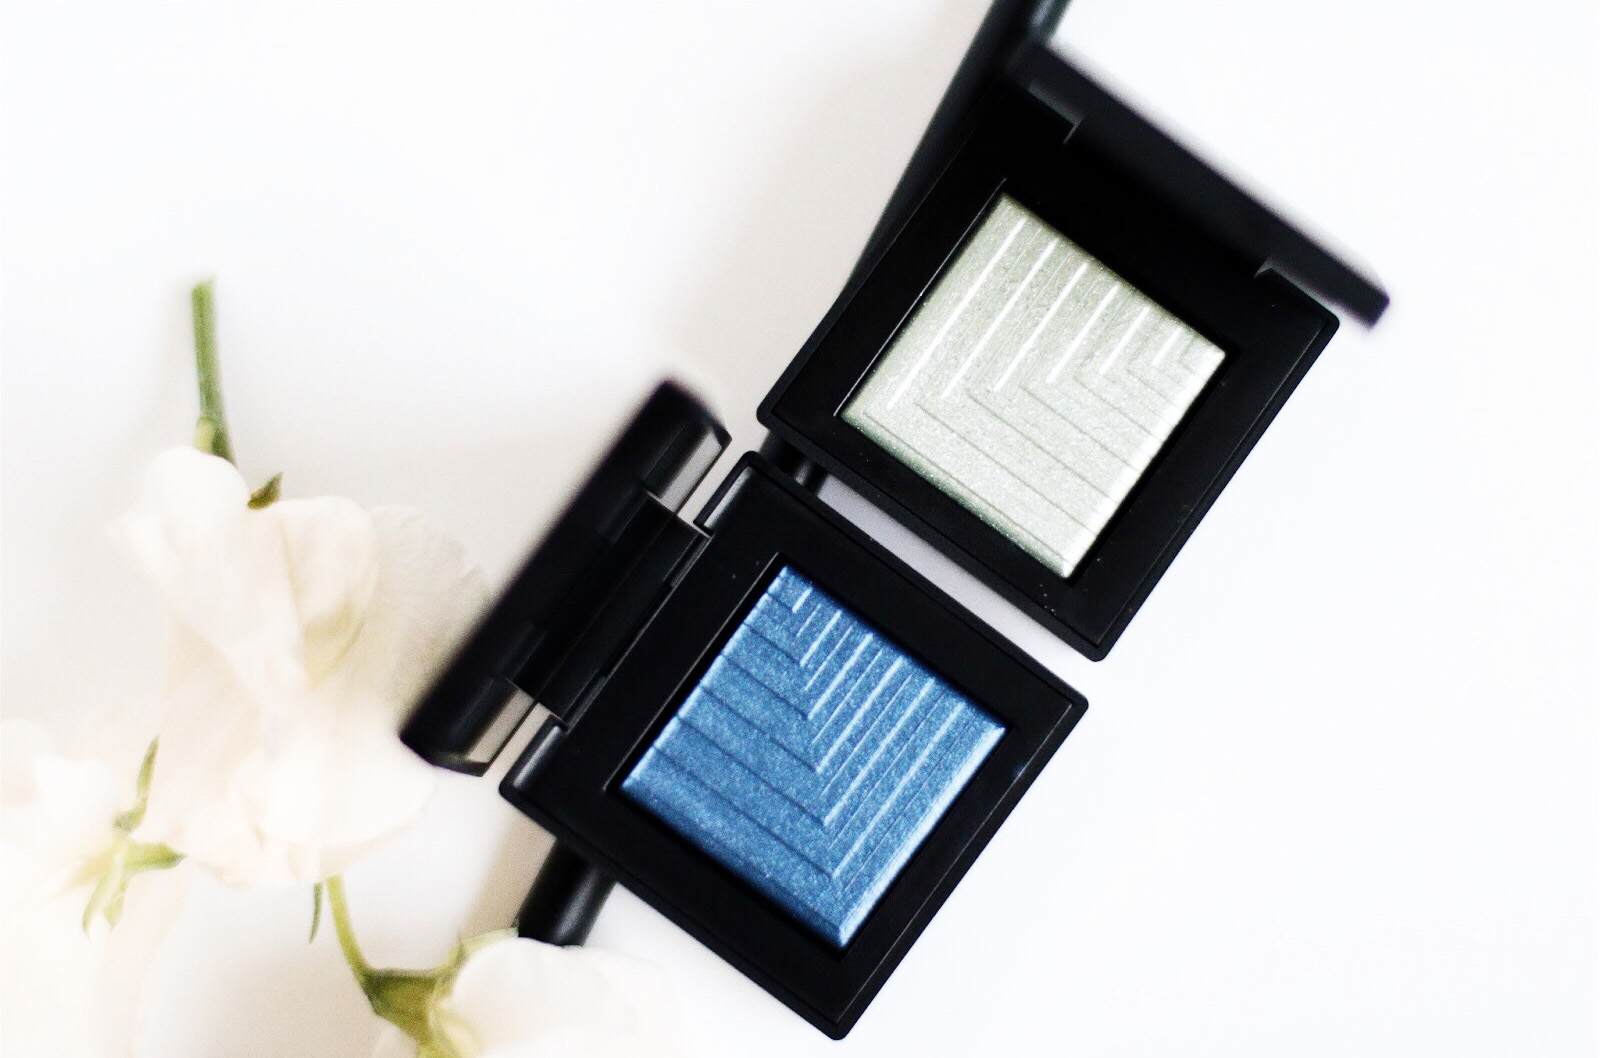 nars dual intensity mono cressida travos avis test swatches